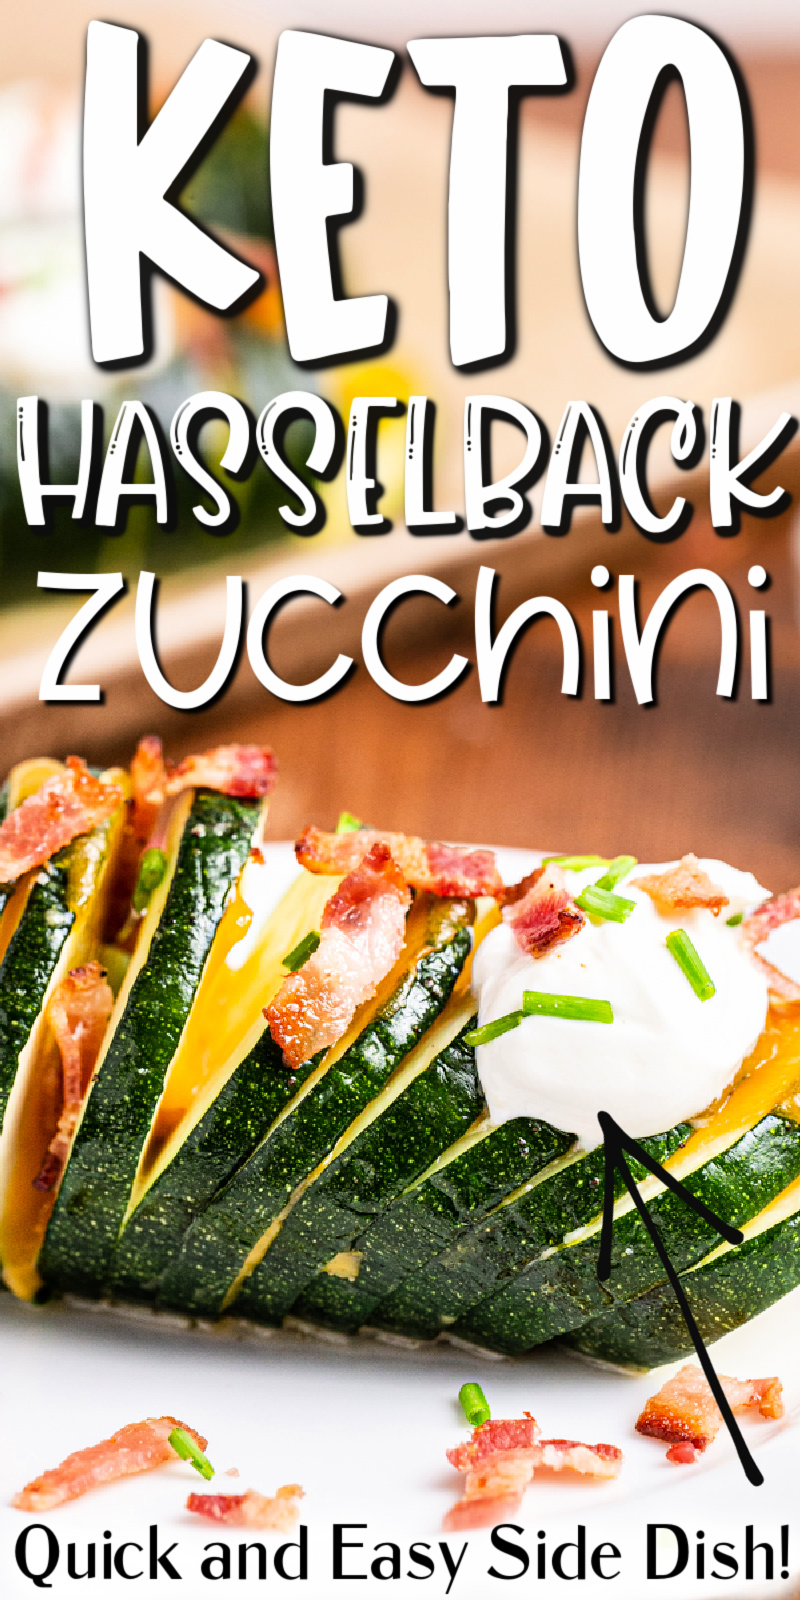 Hasselback Zucchini - This loaded Hasselback zucchini recipe is an easy-to-make low carb, keto, and gluten-free side dish that everyone will love! #keto #lowcarb #glutenfree #loaded #hasselback #zucchini #recipe